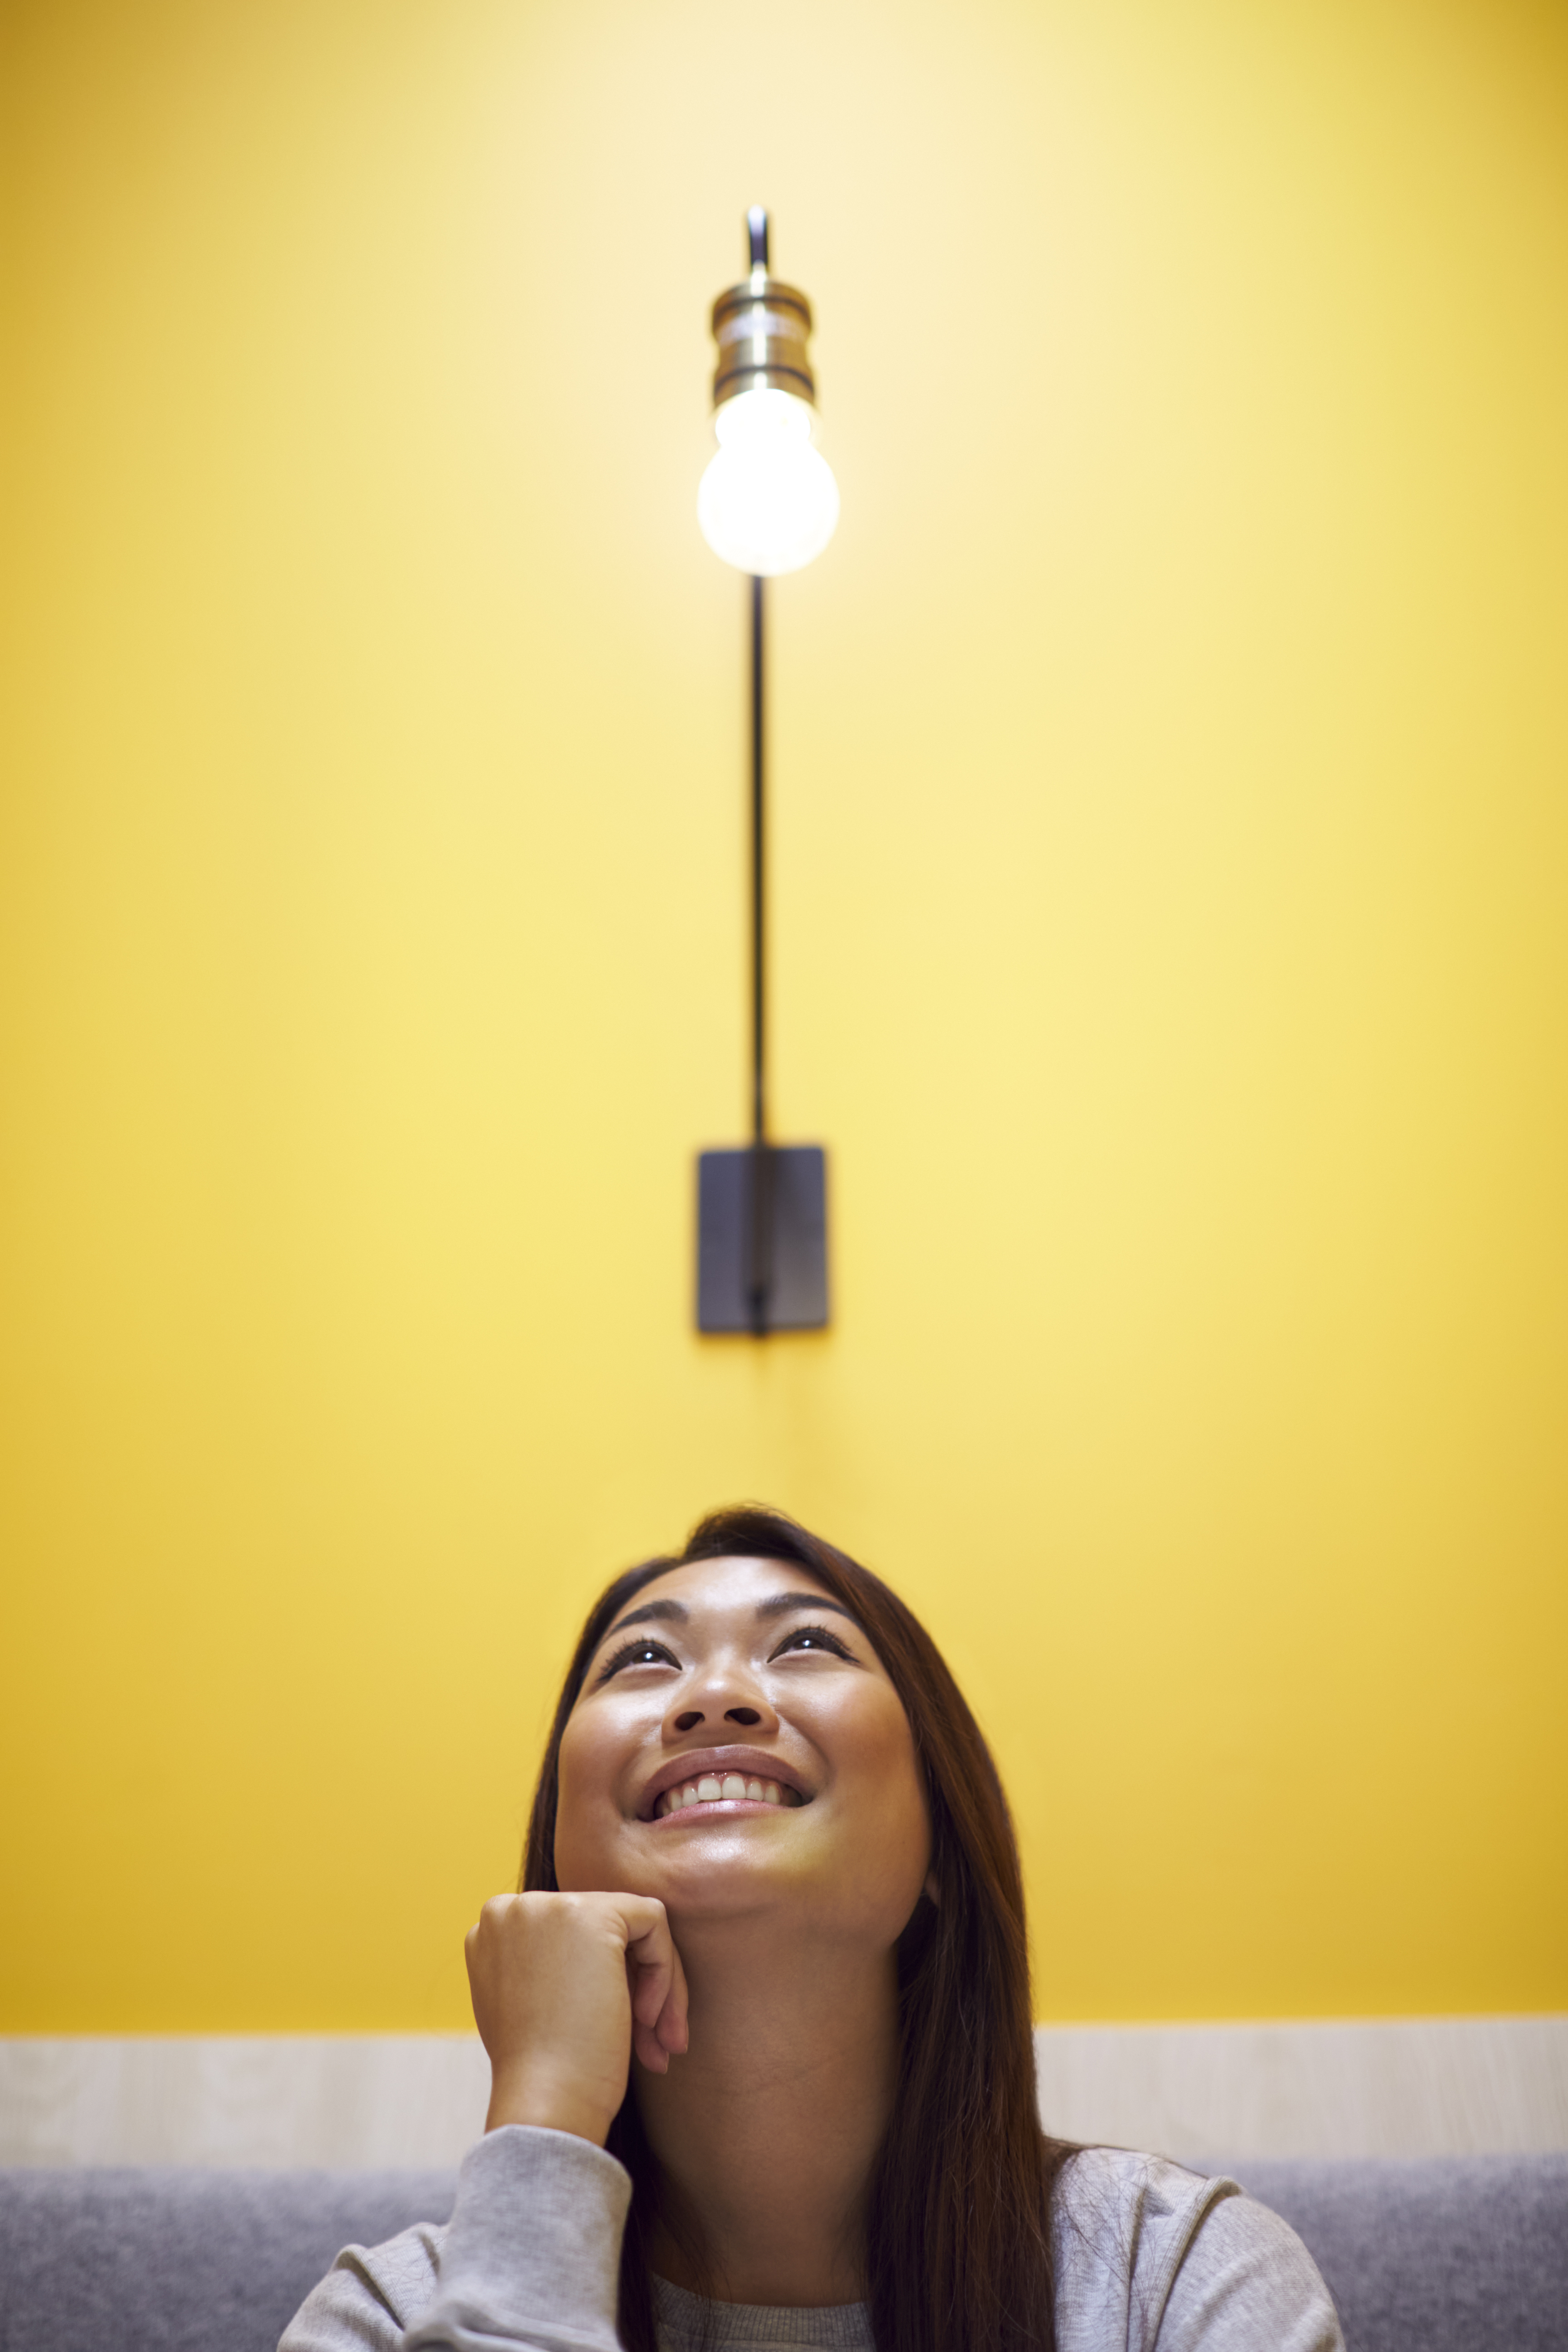 woman-sitting-under-light-bulb-in-office-suggestin-BMD9E2S